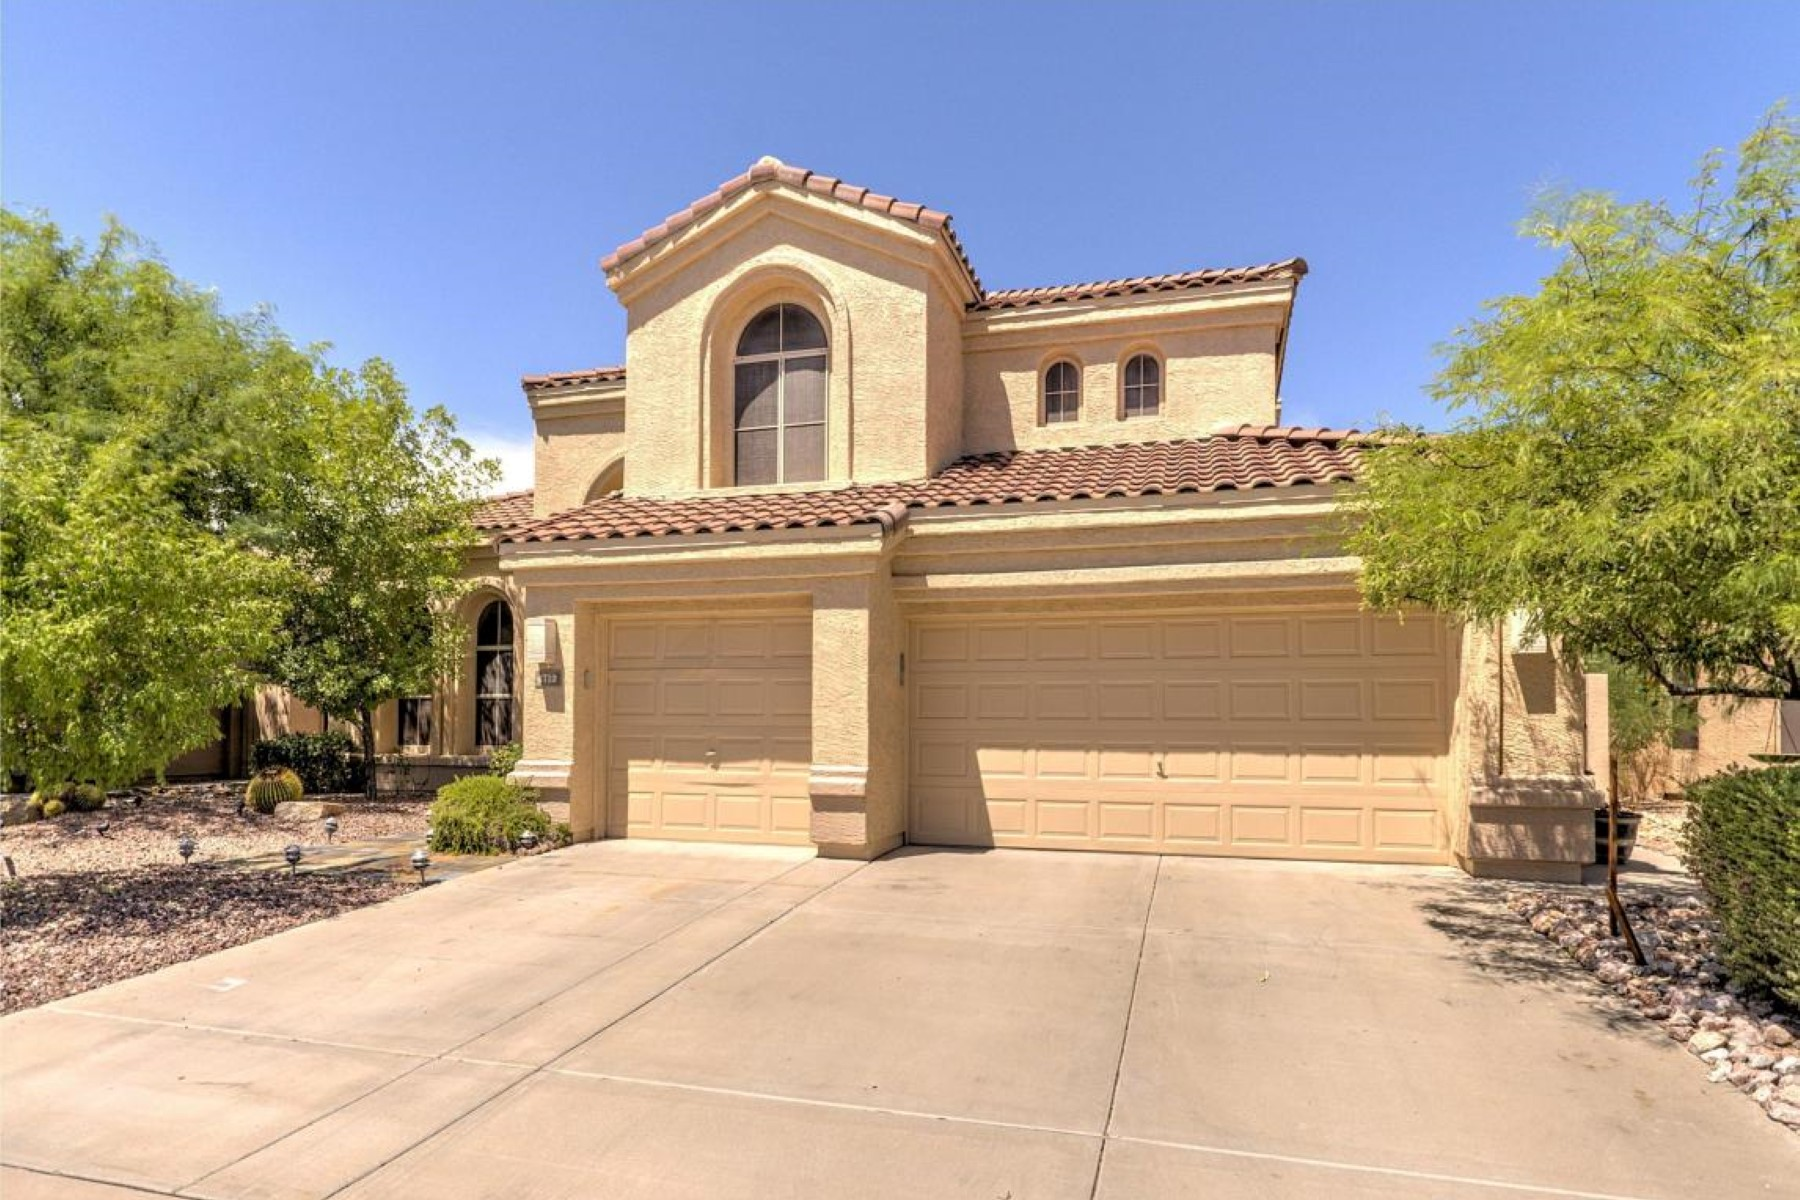 Villa per Vendita alle ore Lovely two story home in Desert Ridge 4712 E Williams Dr Phoenix, Arizona, 85050 Stati Uniti